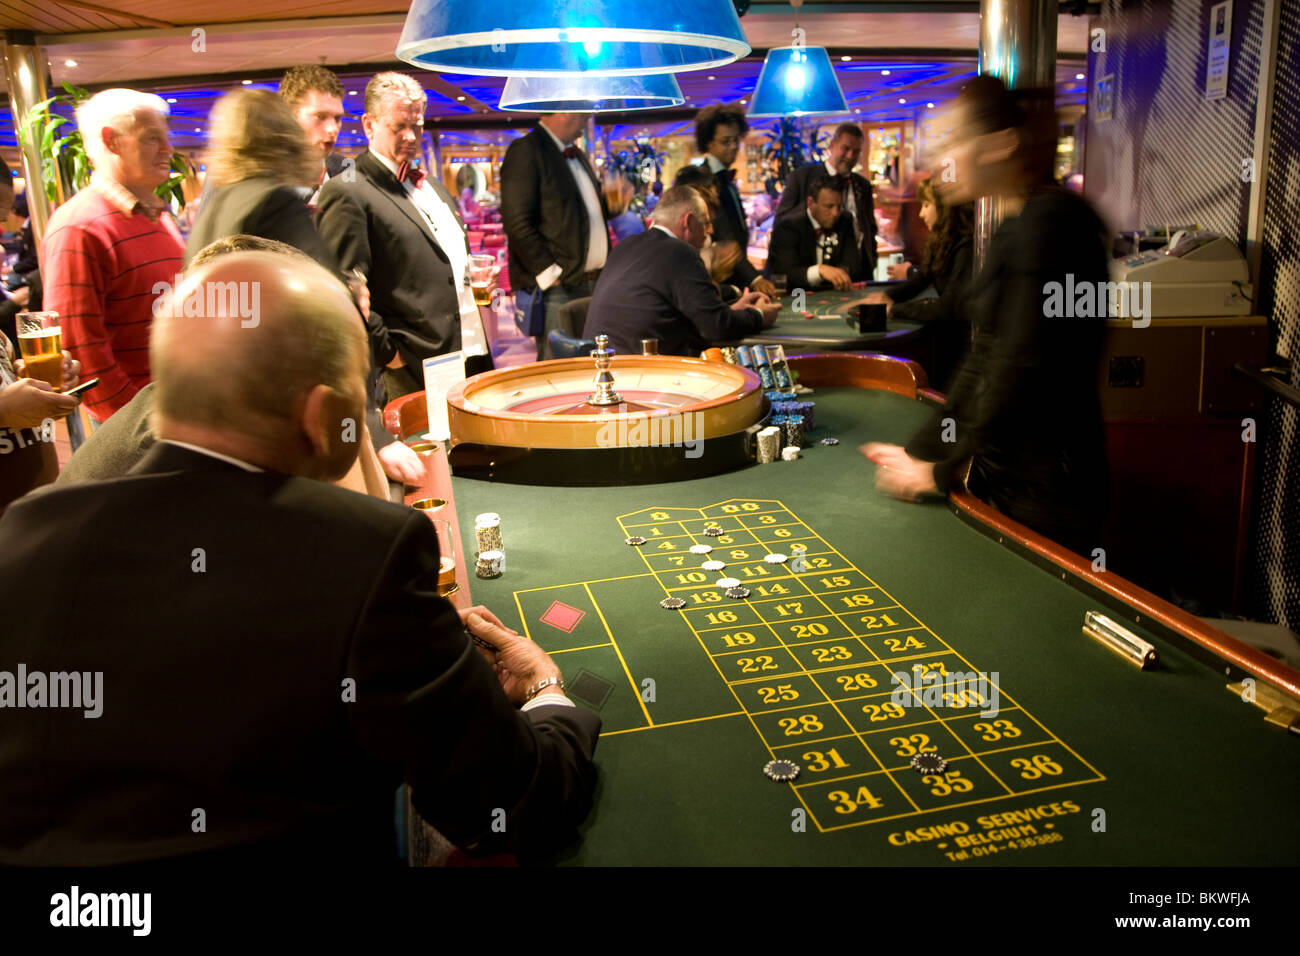 Roulette Casino On Stena Line Ferry Harwich To Holland Stock Photo Alamy